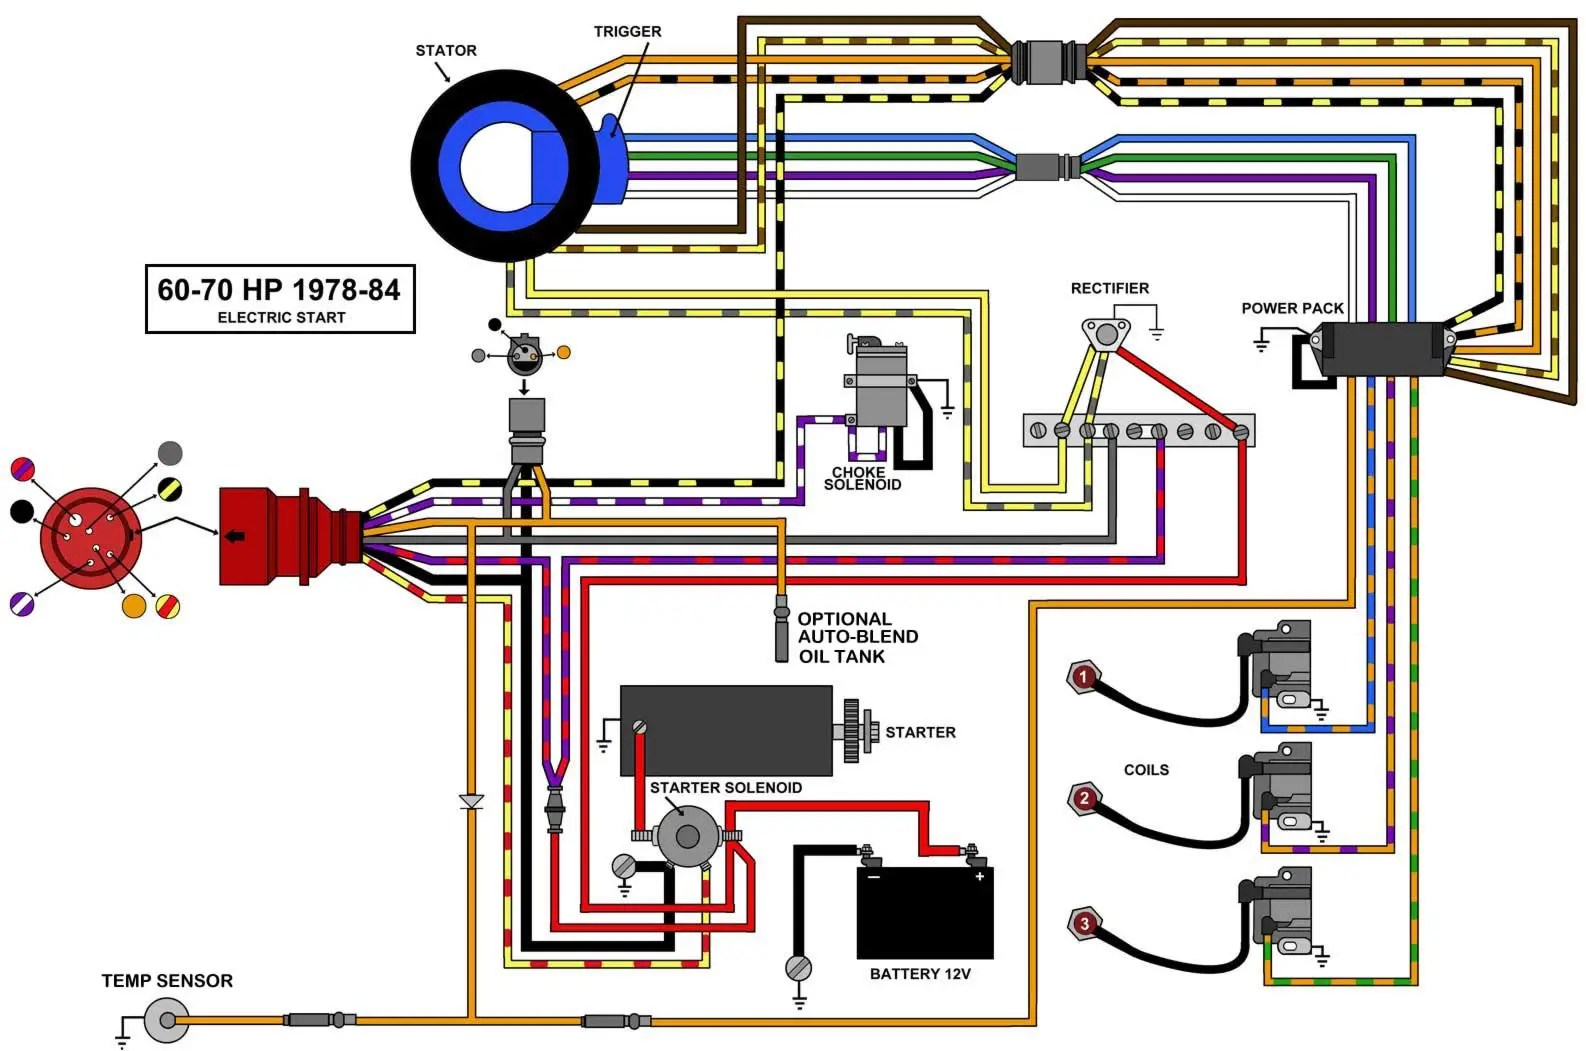 hight resolution of yamaha 70 hp wiring diagram wiring diagrams70 hp yamaha wiring diagram box wiring diagram yamaha motor